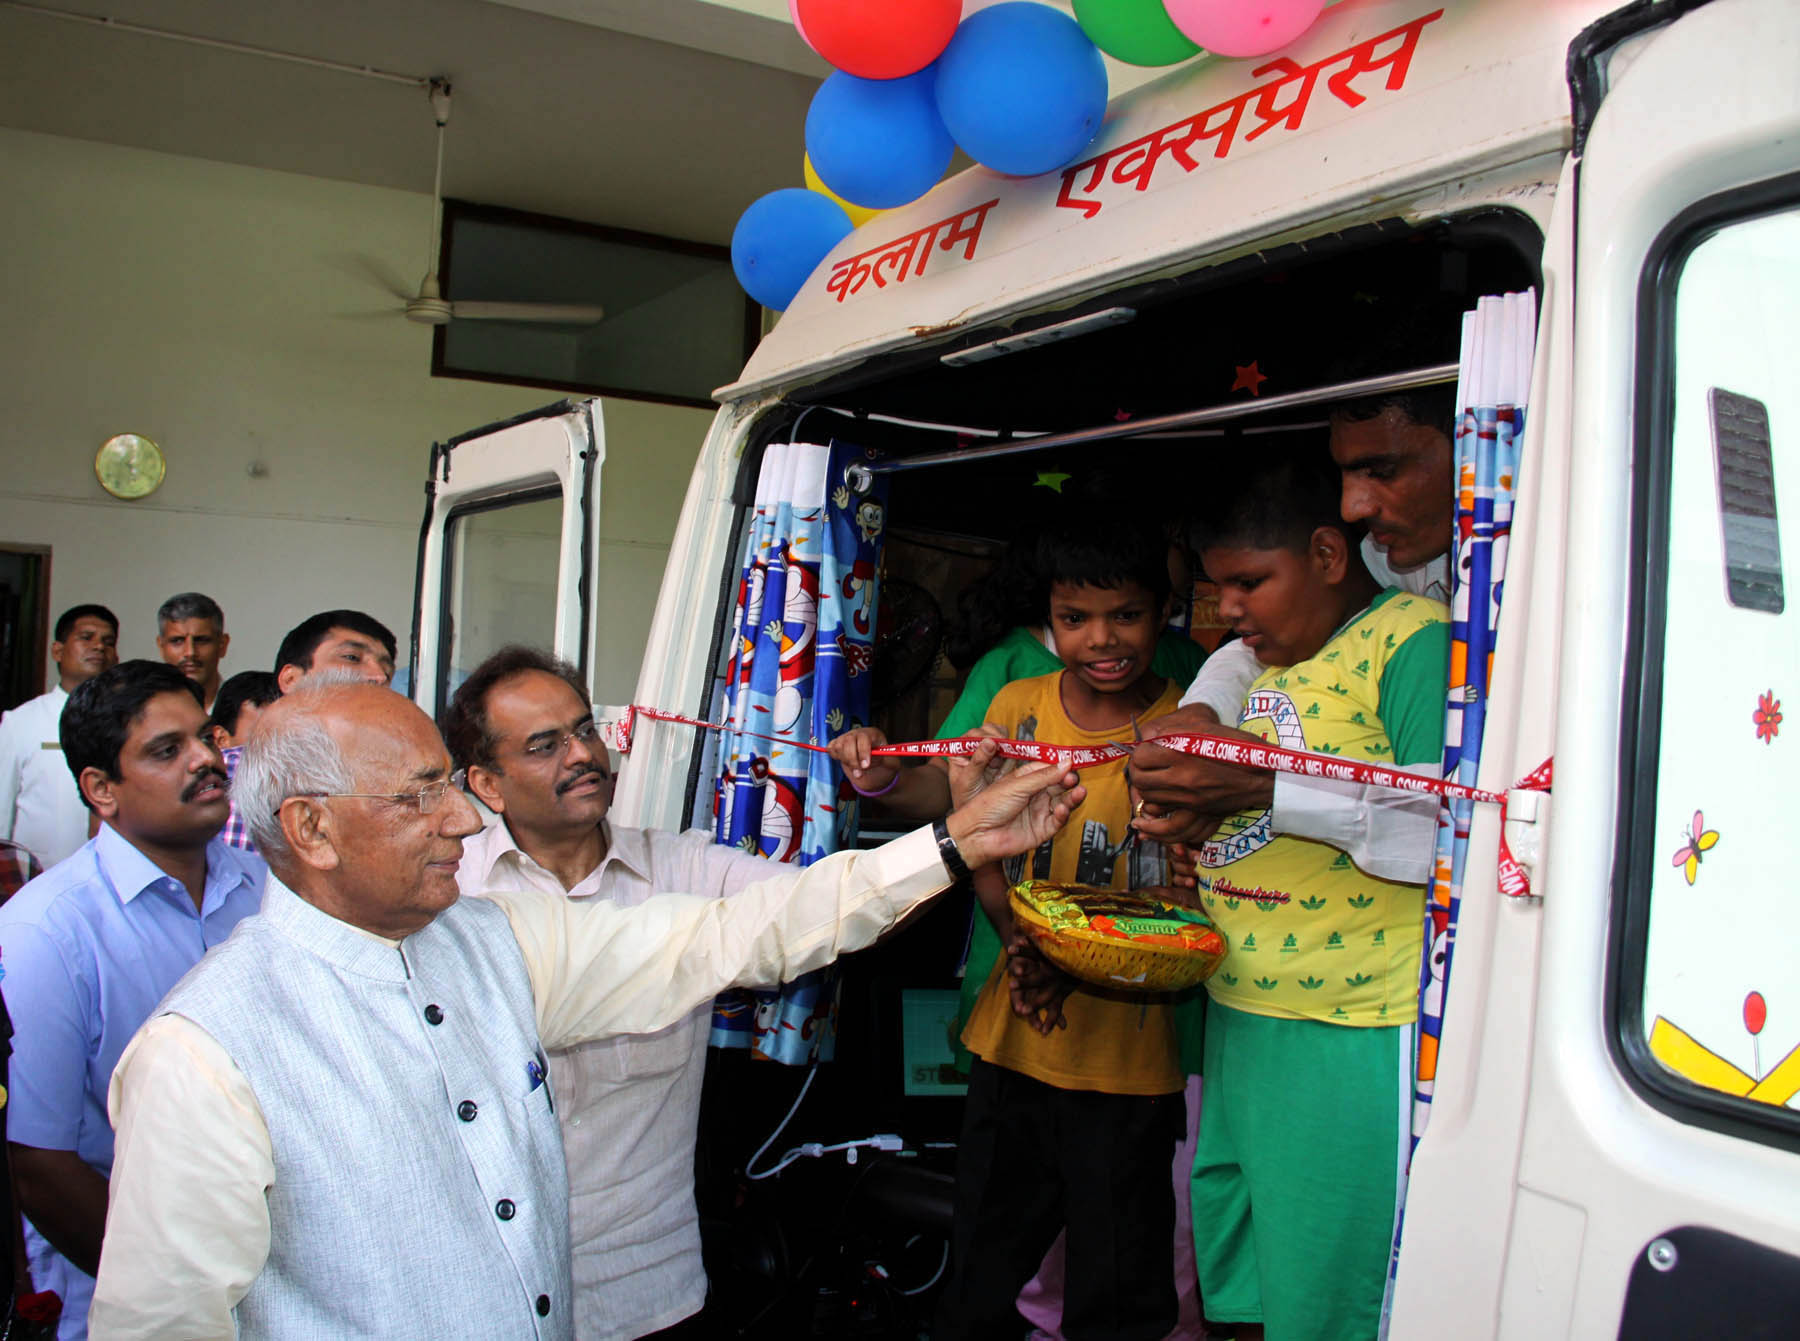 The Governor of Haryana, Punjab and Administrator, UT, Chandigarh, Prof. Kaptan Singh Solanki alongwith Adviser to the Administrator, UT, Chandigarh, Sh. Parimal Rai and children inaugurating the �Kalam Express� a Mobile Educational-cum-Rehabilitation unit for Children with Special needs at Haryana Raj Bhawan, Chandigarh on Thursday, June 23, 2016.